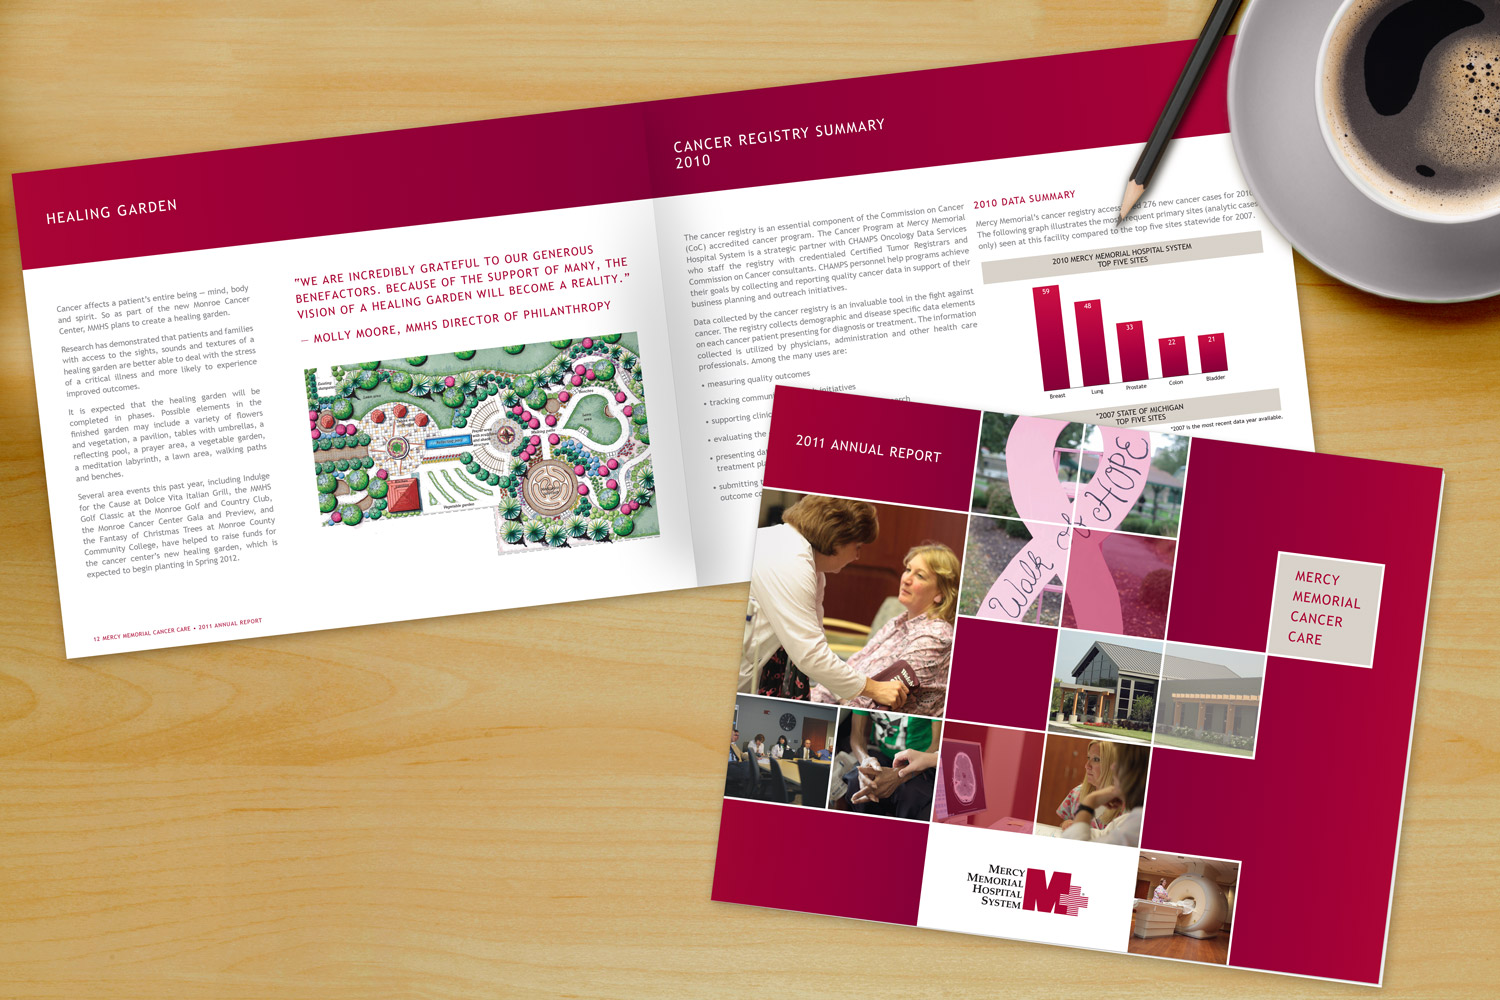 MMHS-Cancer-Annual_Mockup.jpg